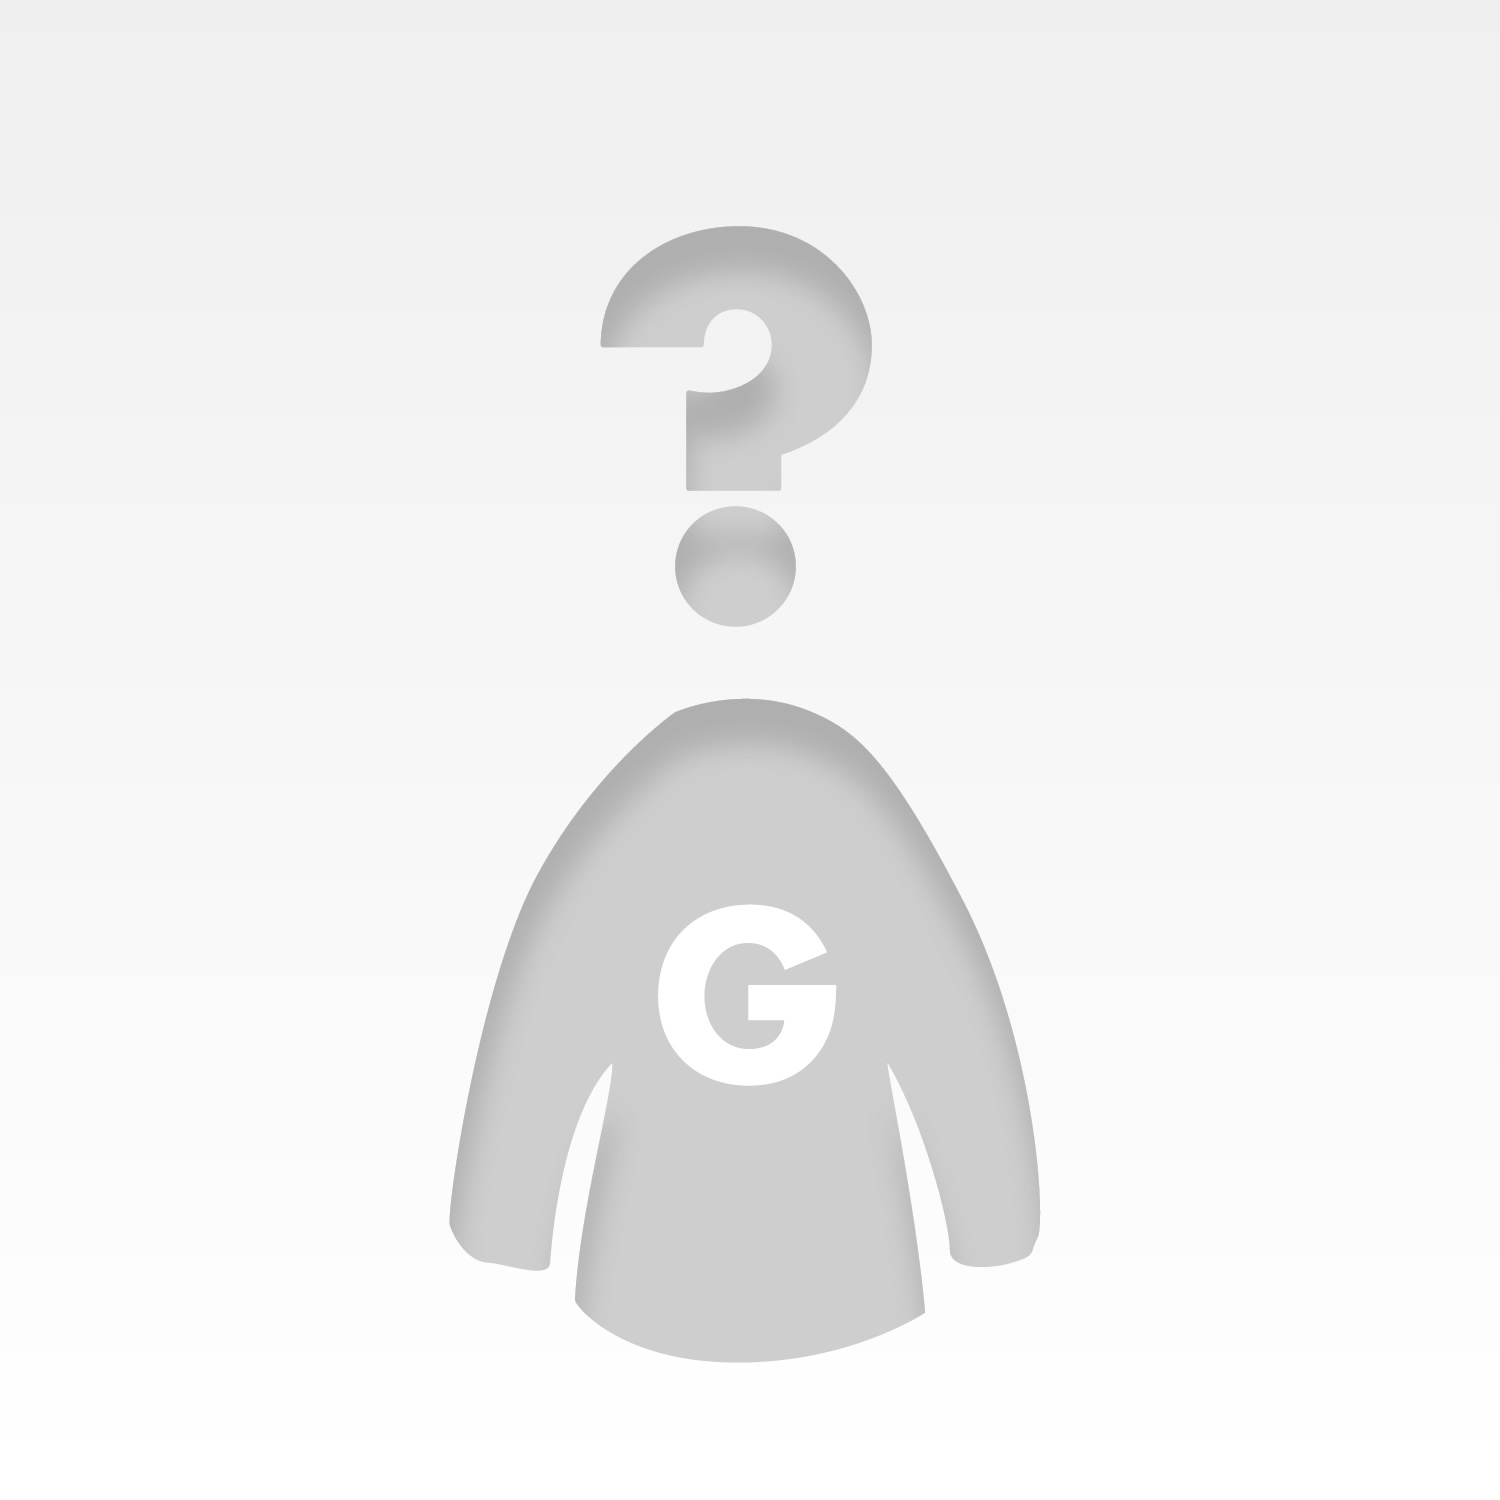 gregory4321\'s avatar